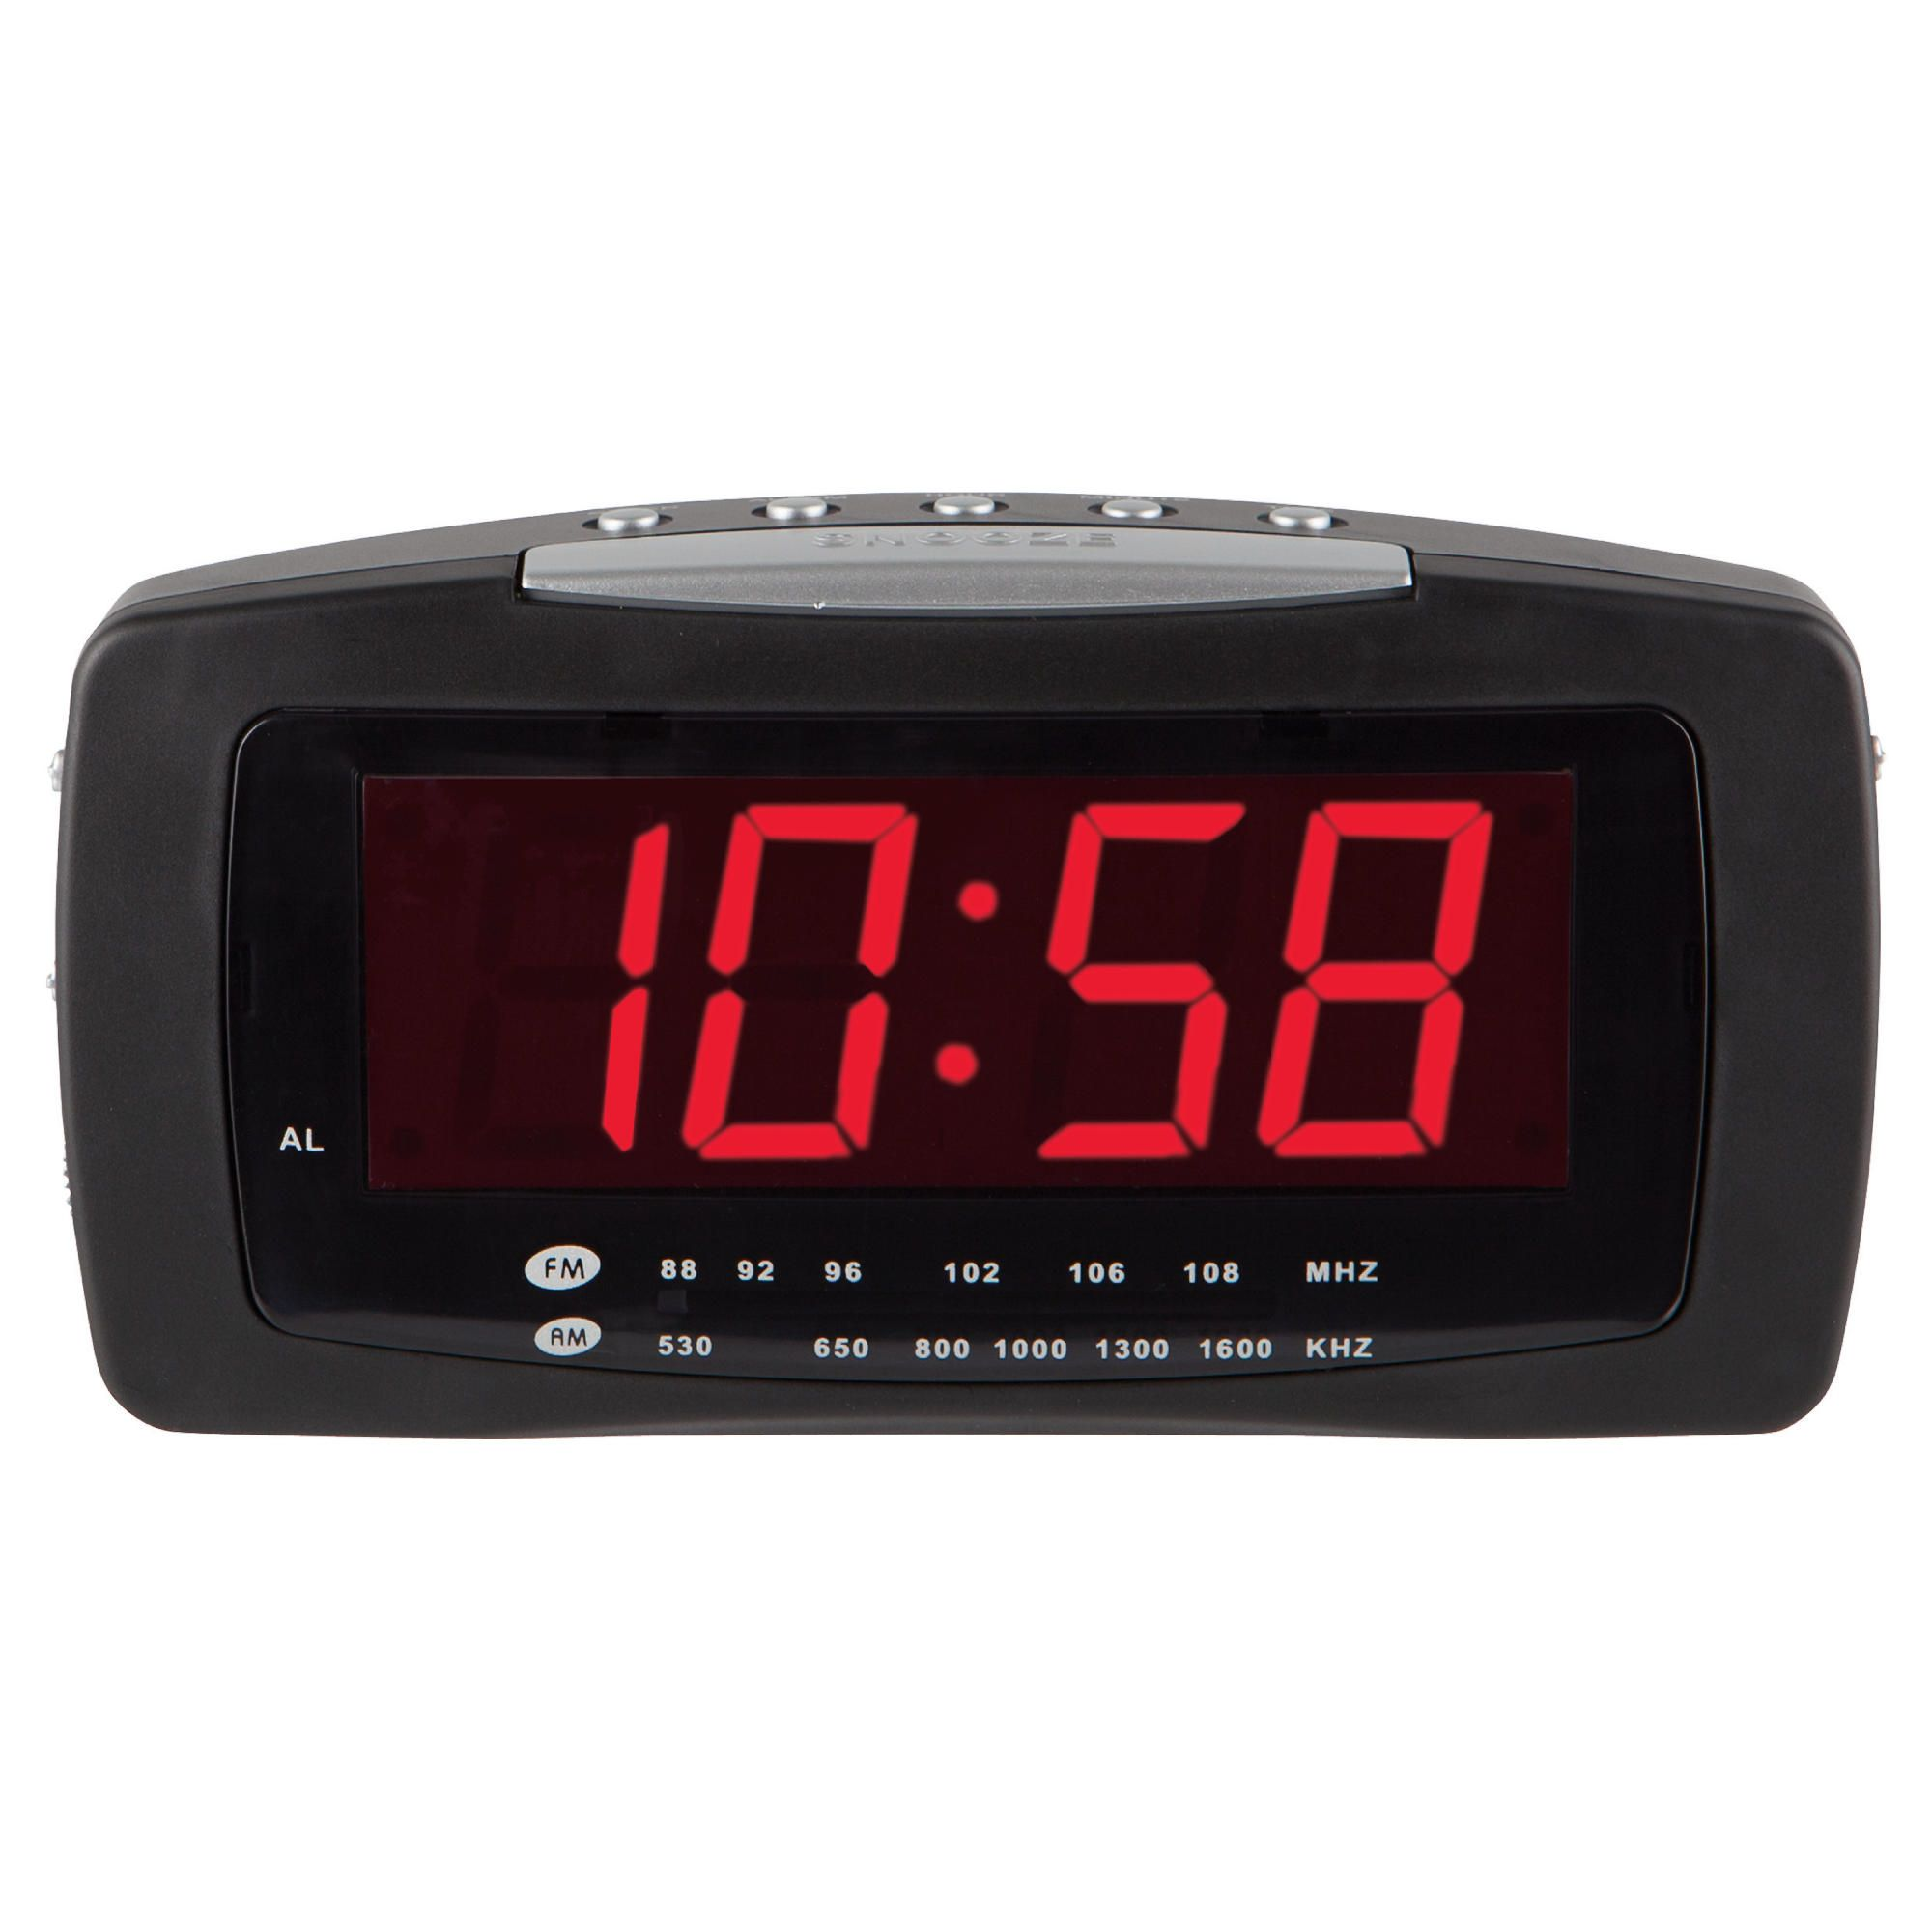 tesco value cr 106 clock radio black tesco value cr 106 clock radio black. Black Bedroom Furniture Sets. Home Design Ideas